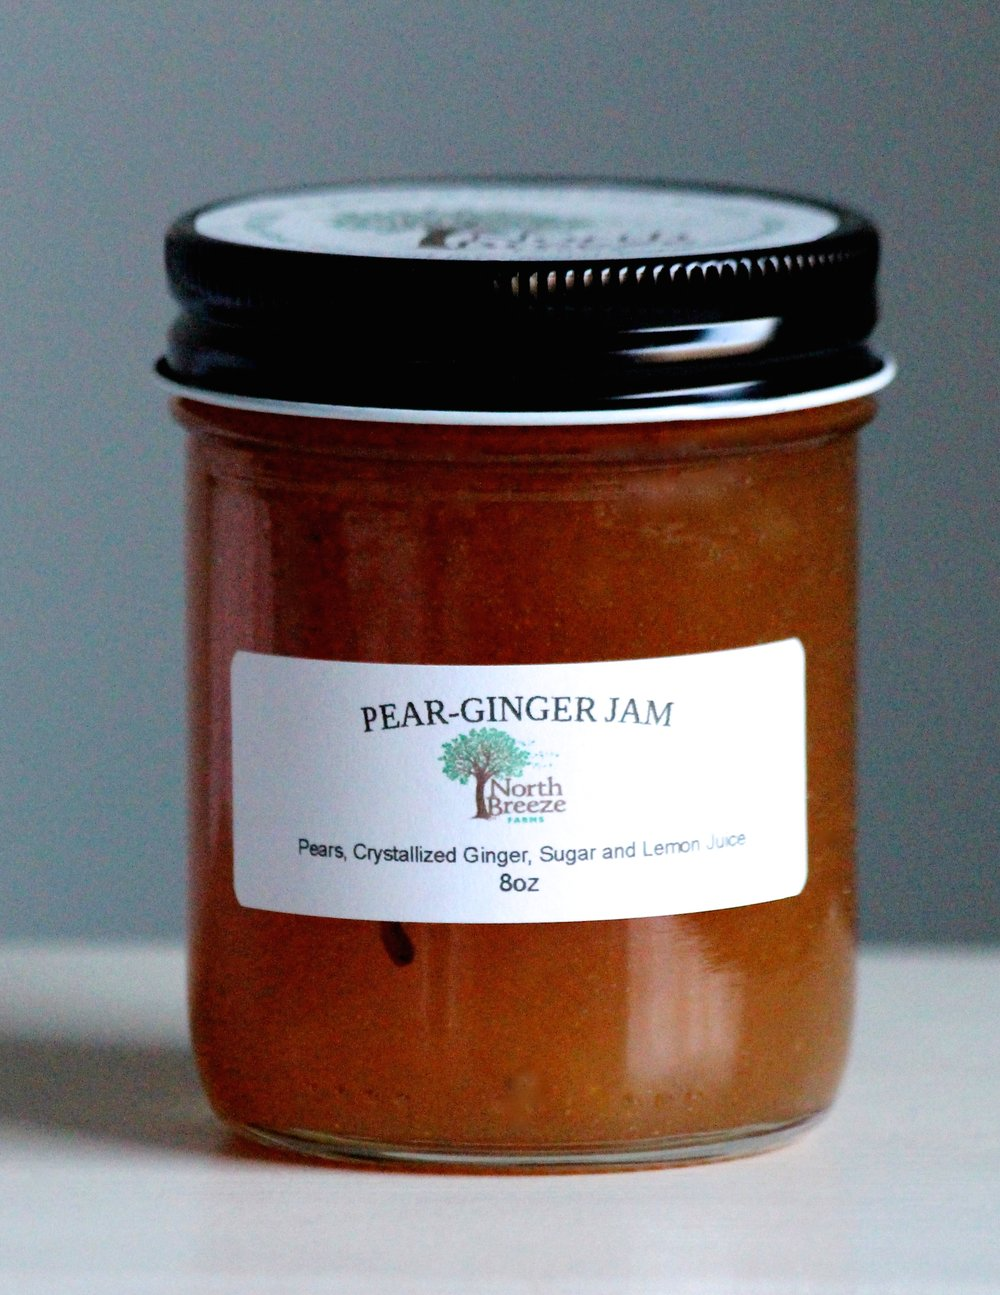 Pear-Ginger Jam $12